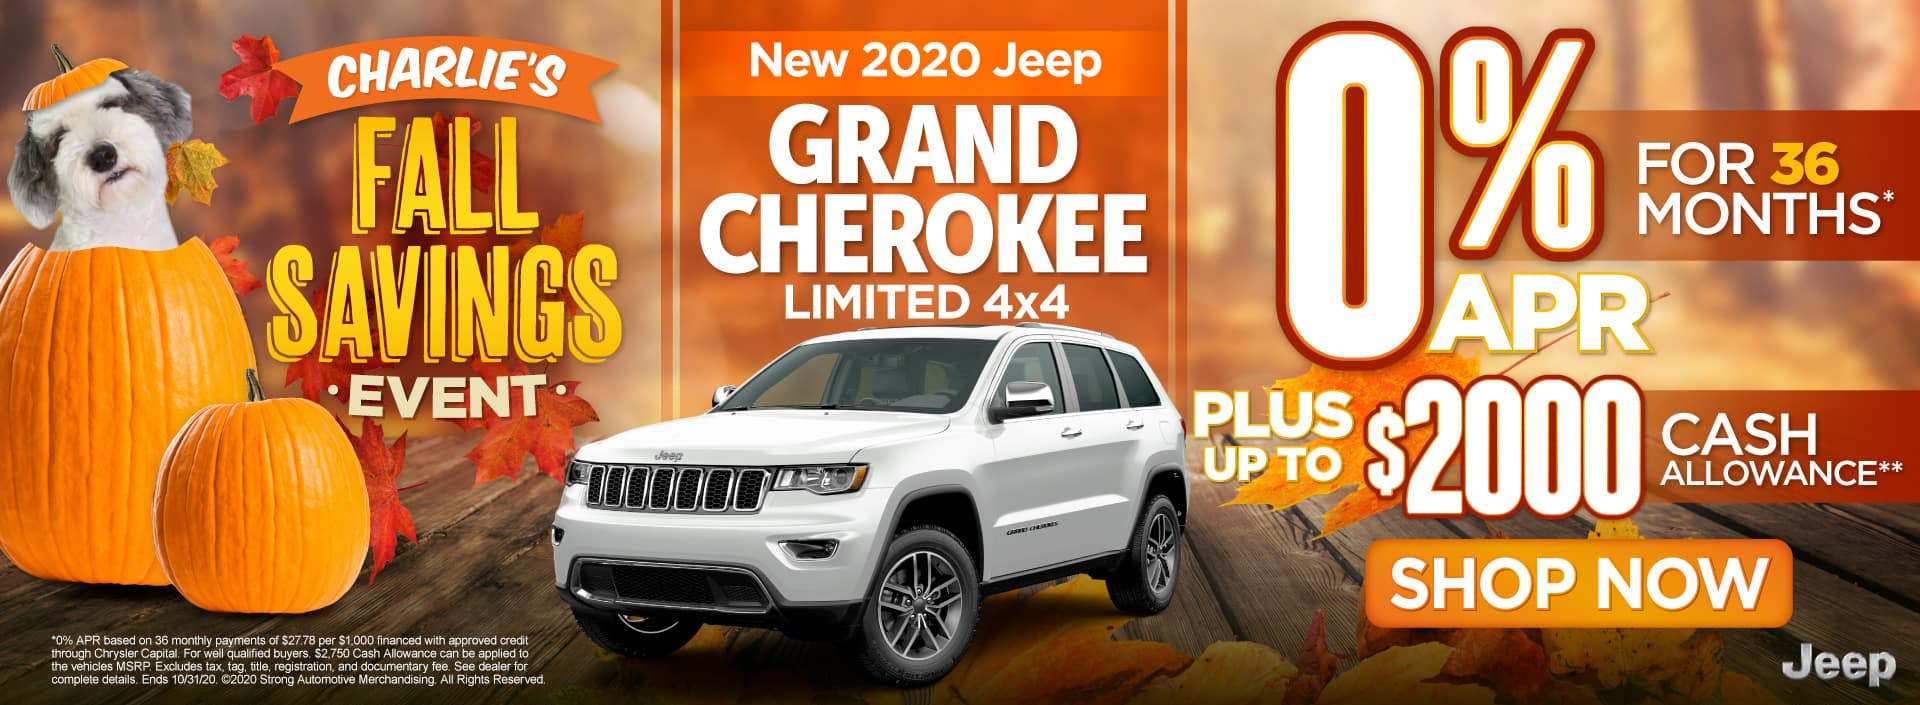 New 2020 Jeep Grand Cherokee - 0% APR for 36 months - Shop Now